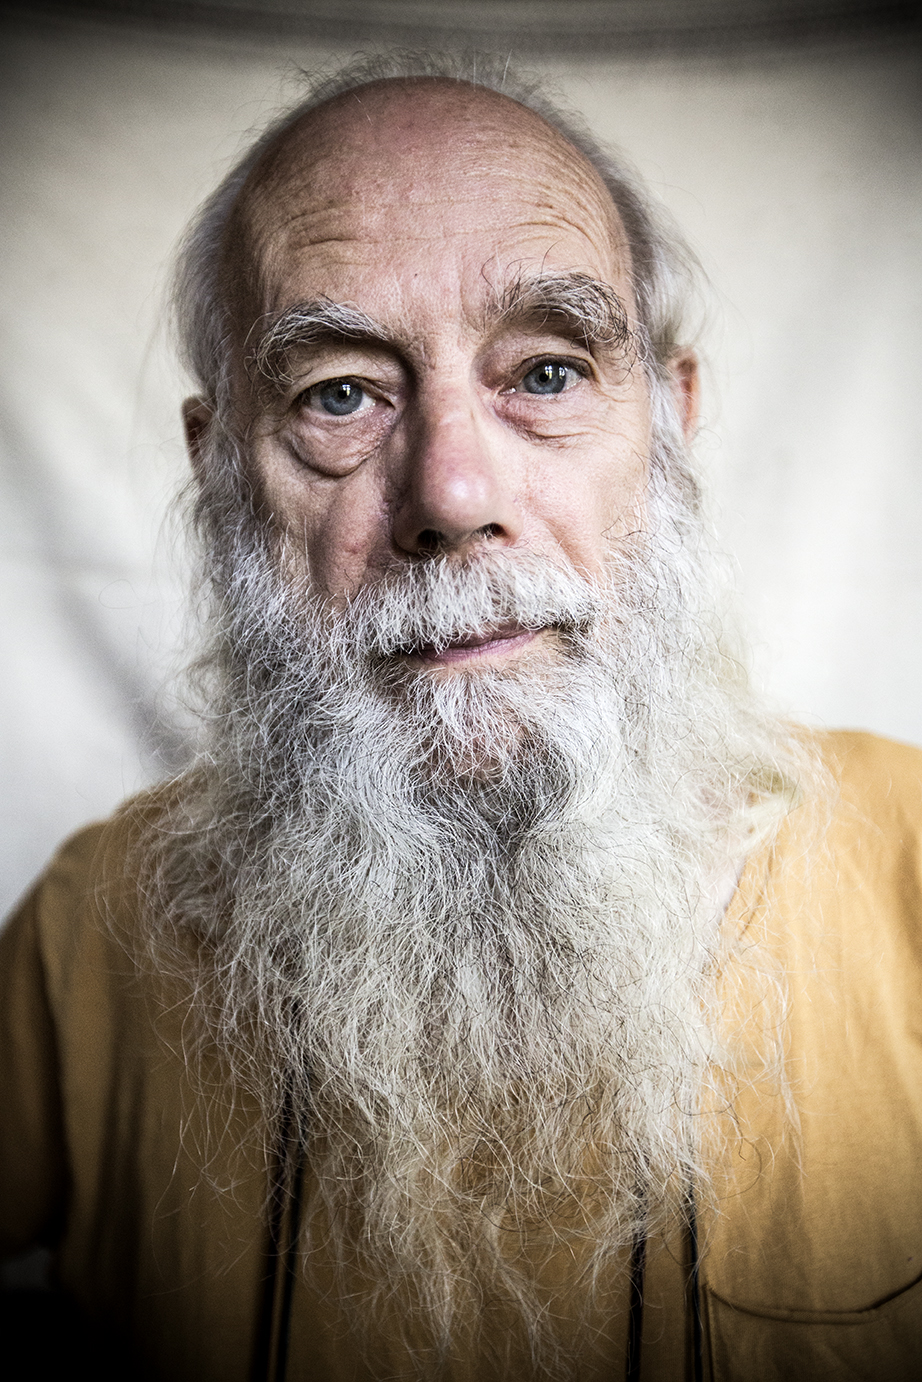 A man in his sixties with white hair and a long beard stares intently into the calendar.